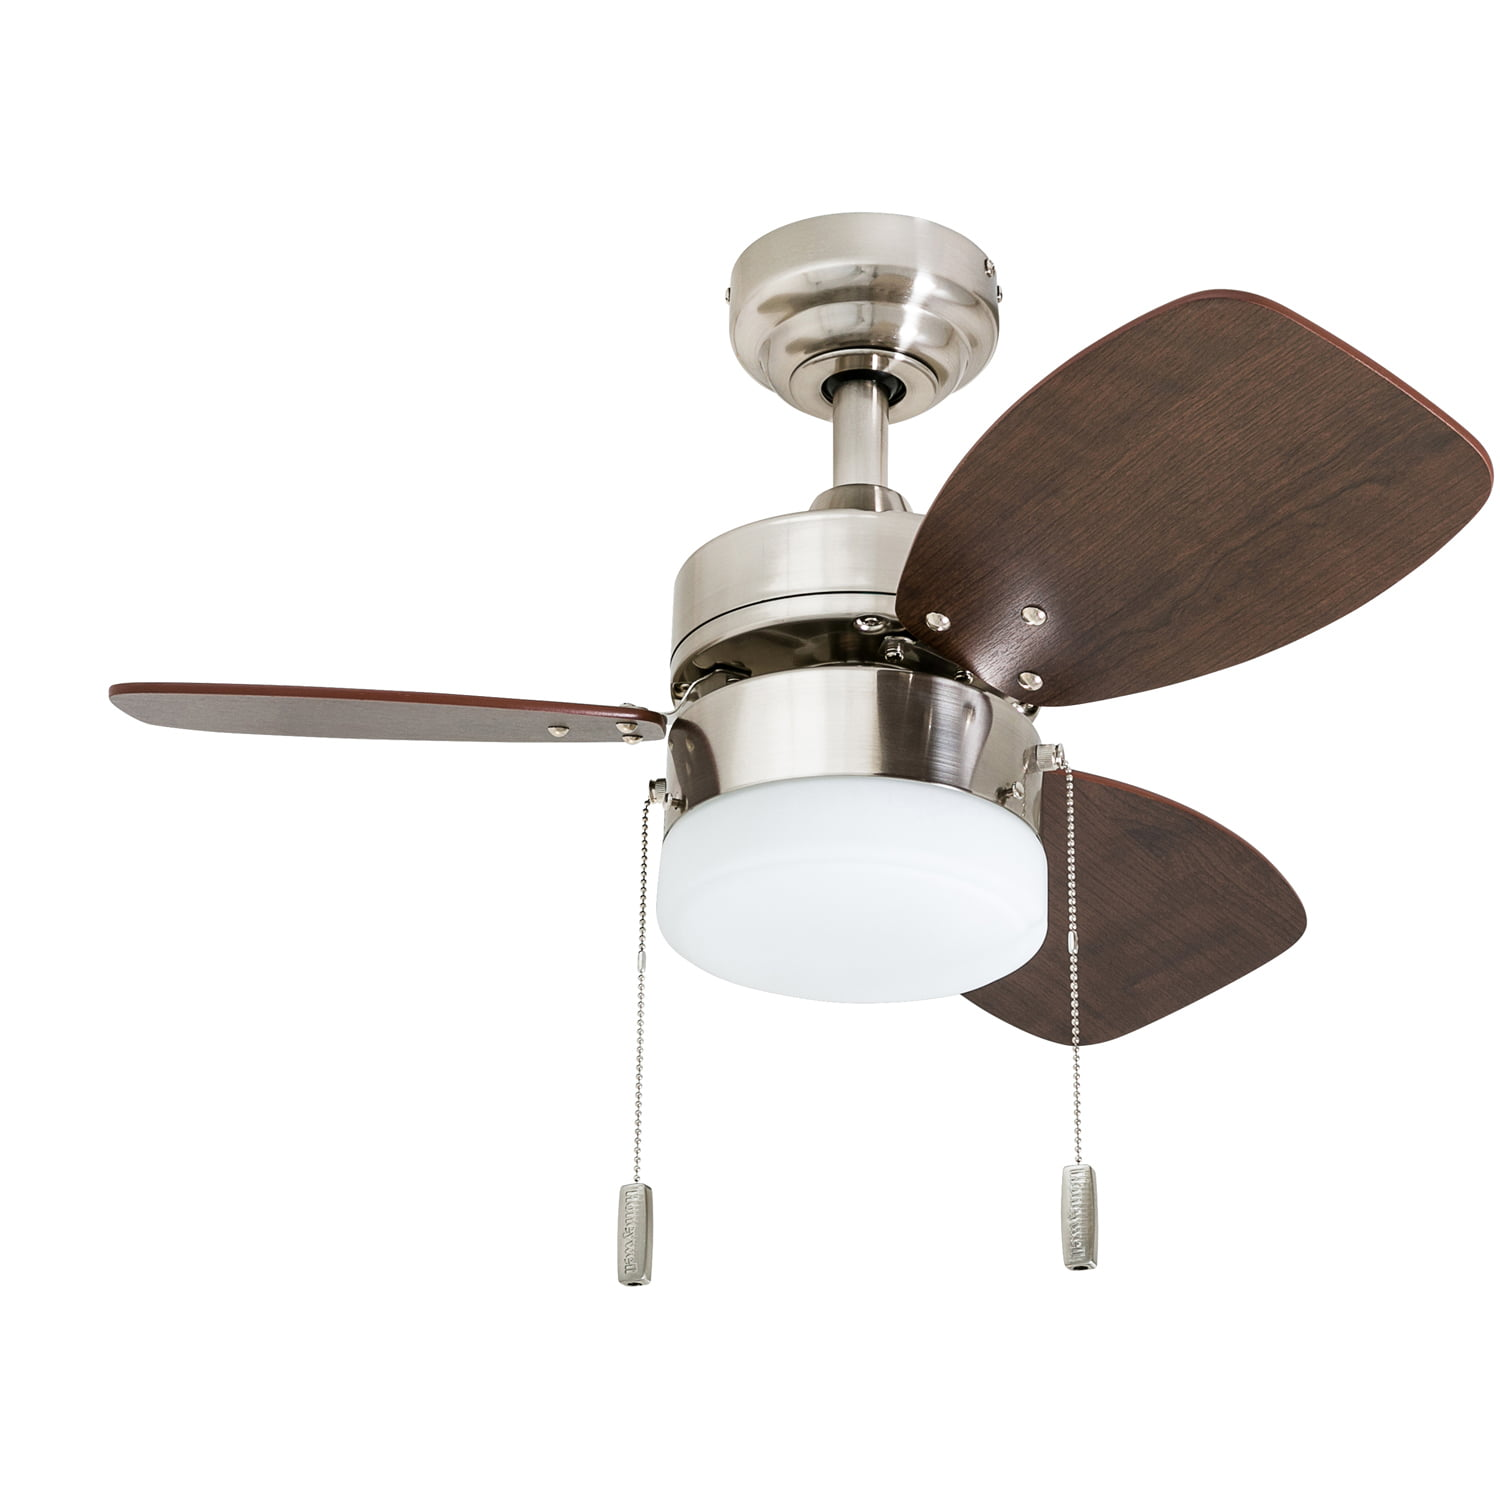 Honeywell Ocean Breeze 30 Inchbrushed Nickel Small 3 Blade Led Ceiling Fan With Light Walmart Com Walmart Com